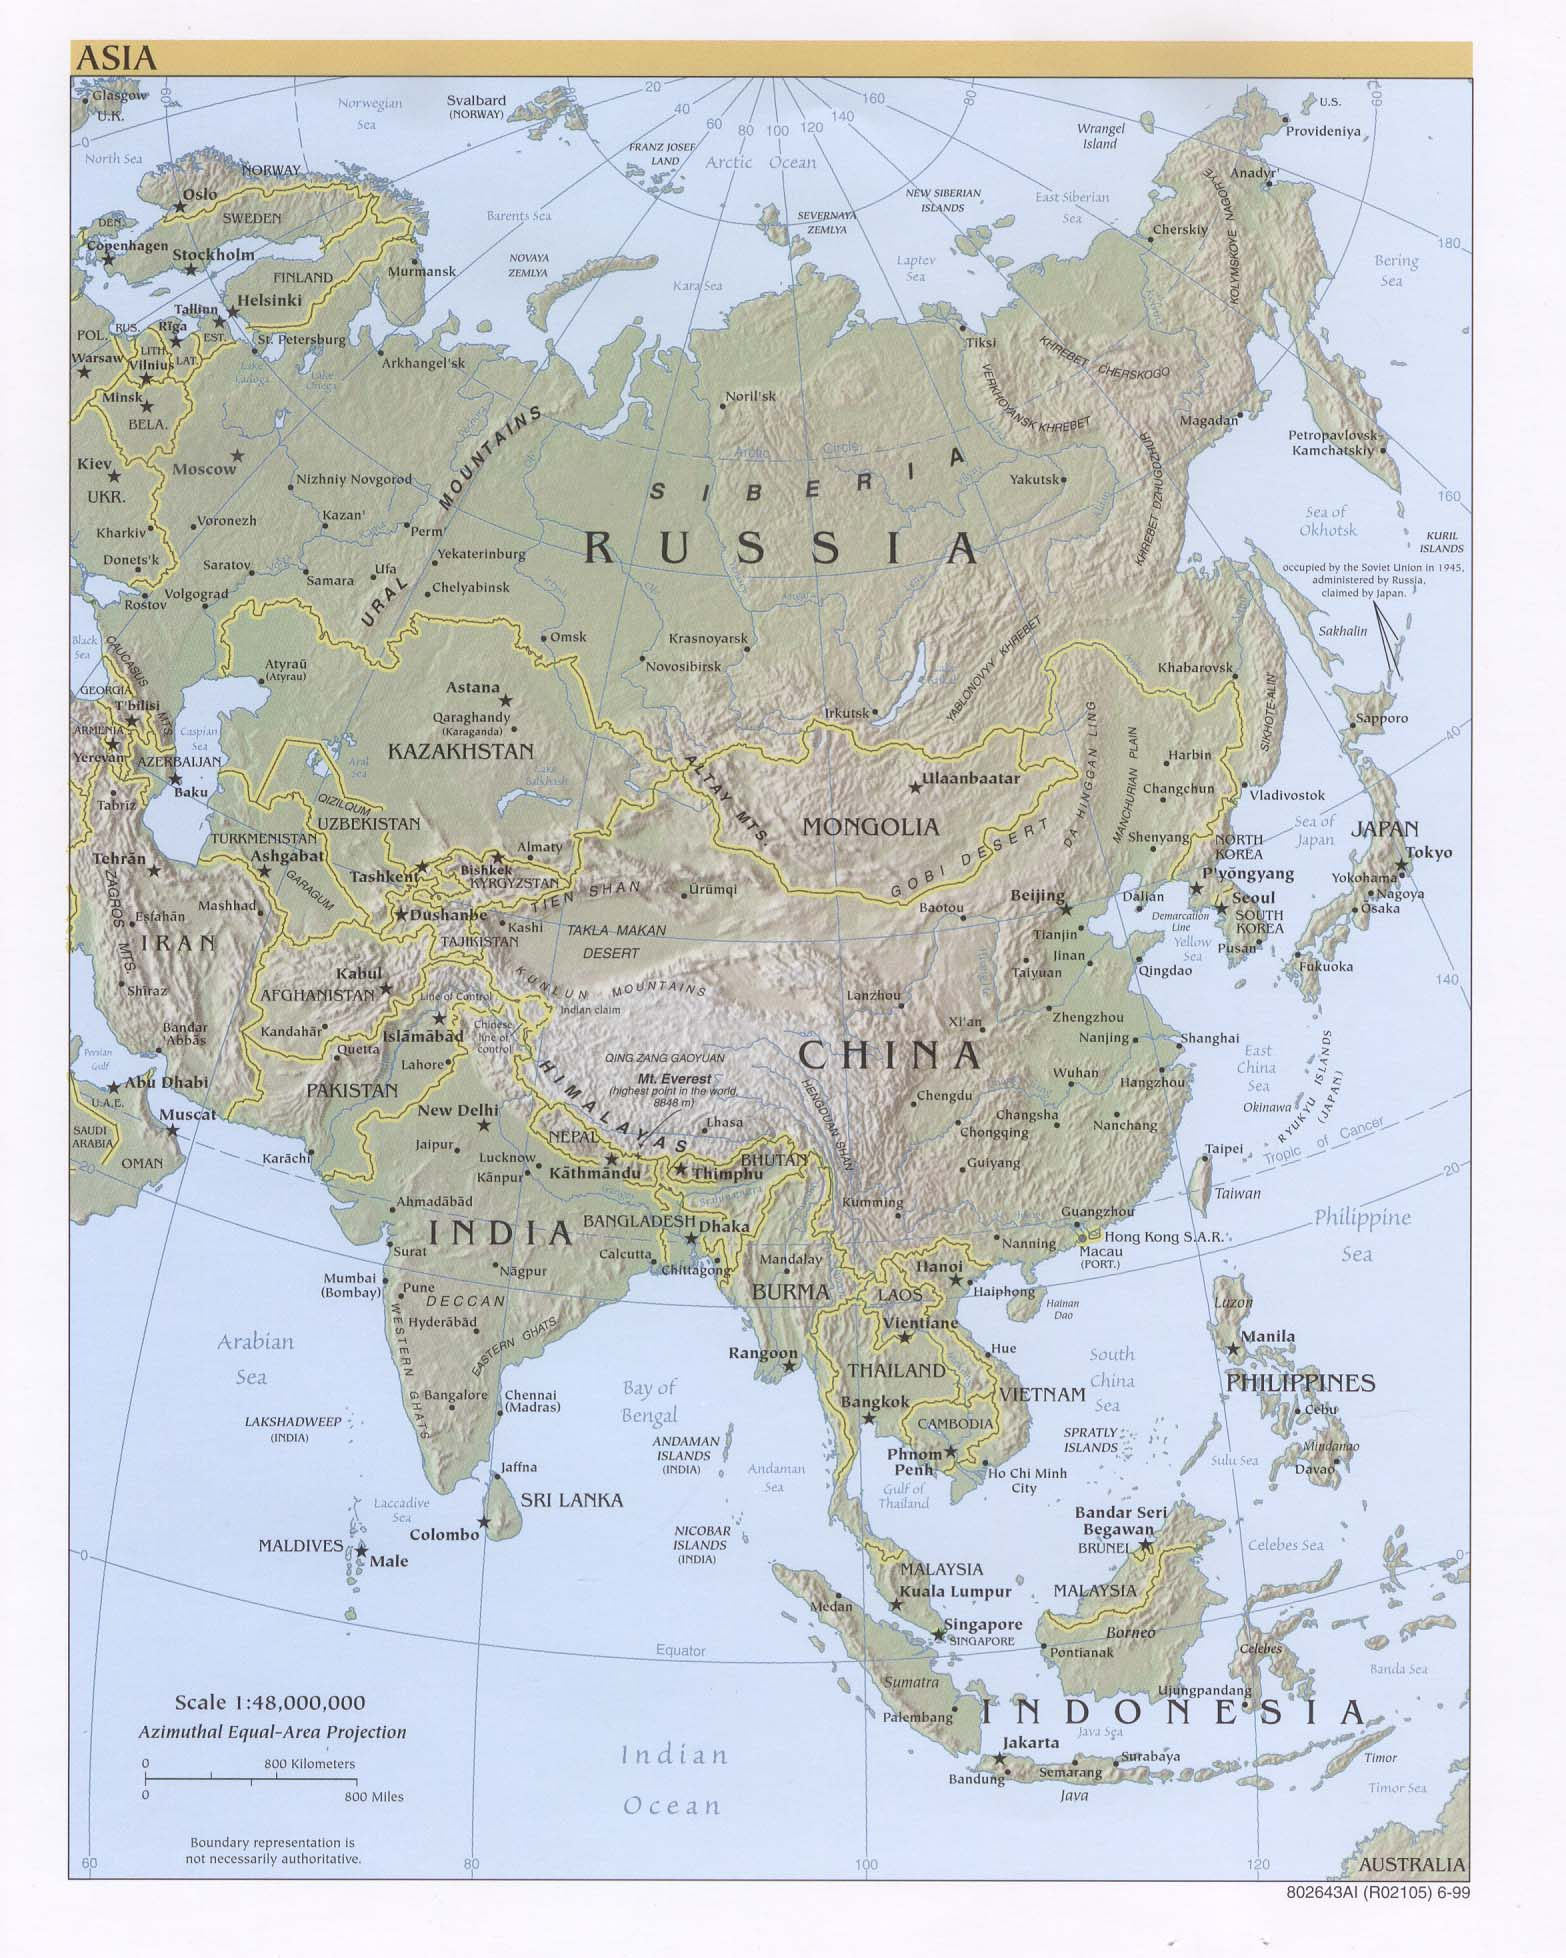 Asia physical map 1999 Full size